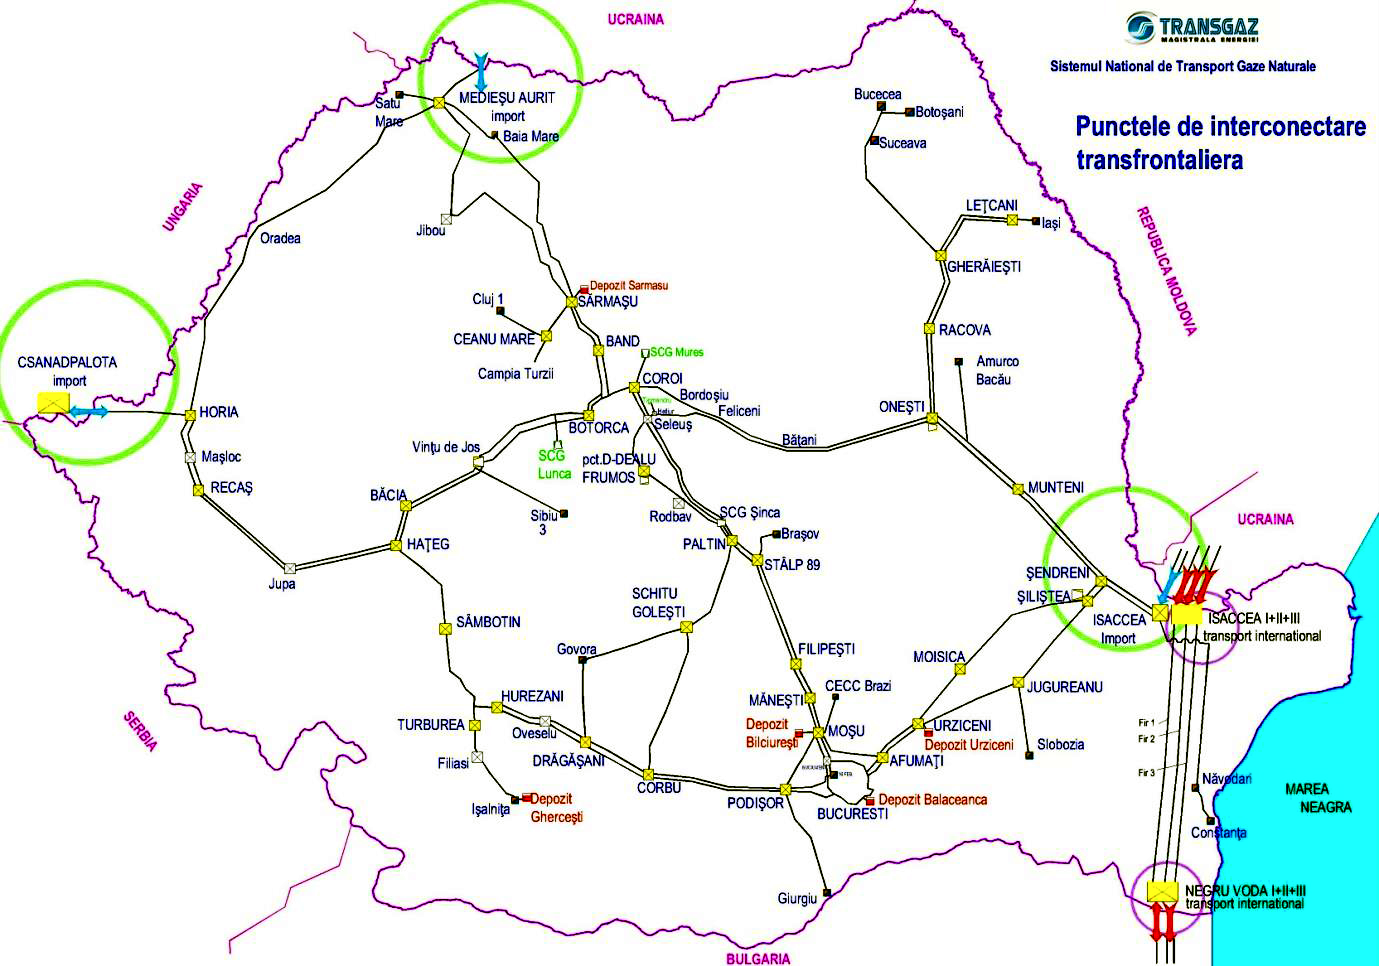 Romania's Natural Gas Infrastructure|Natural gas infrastructure in